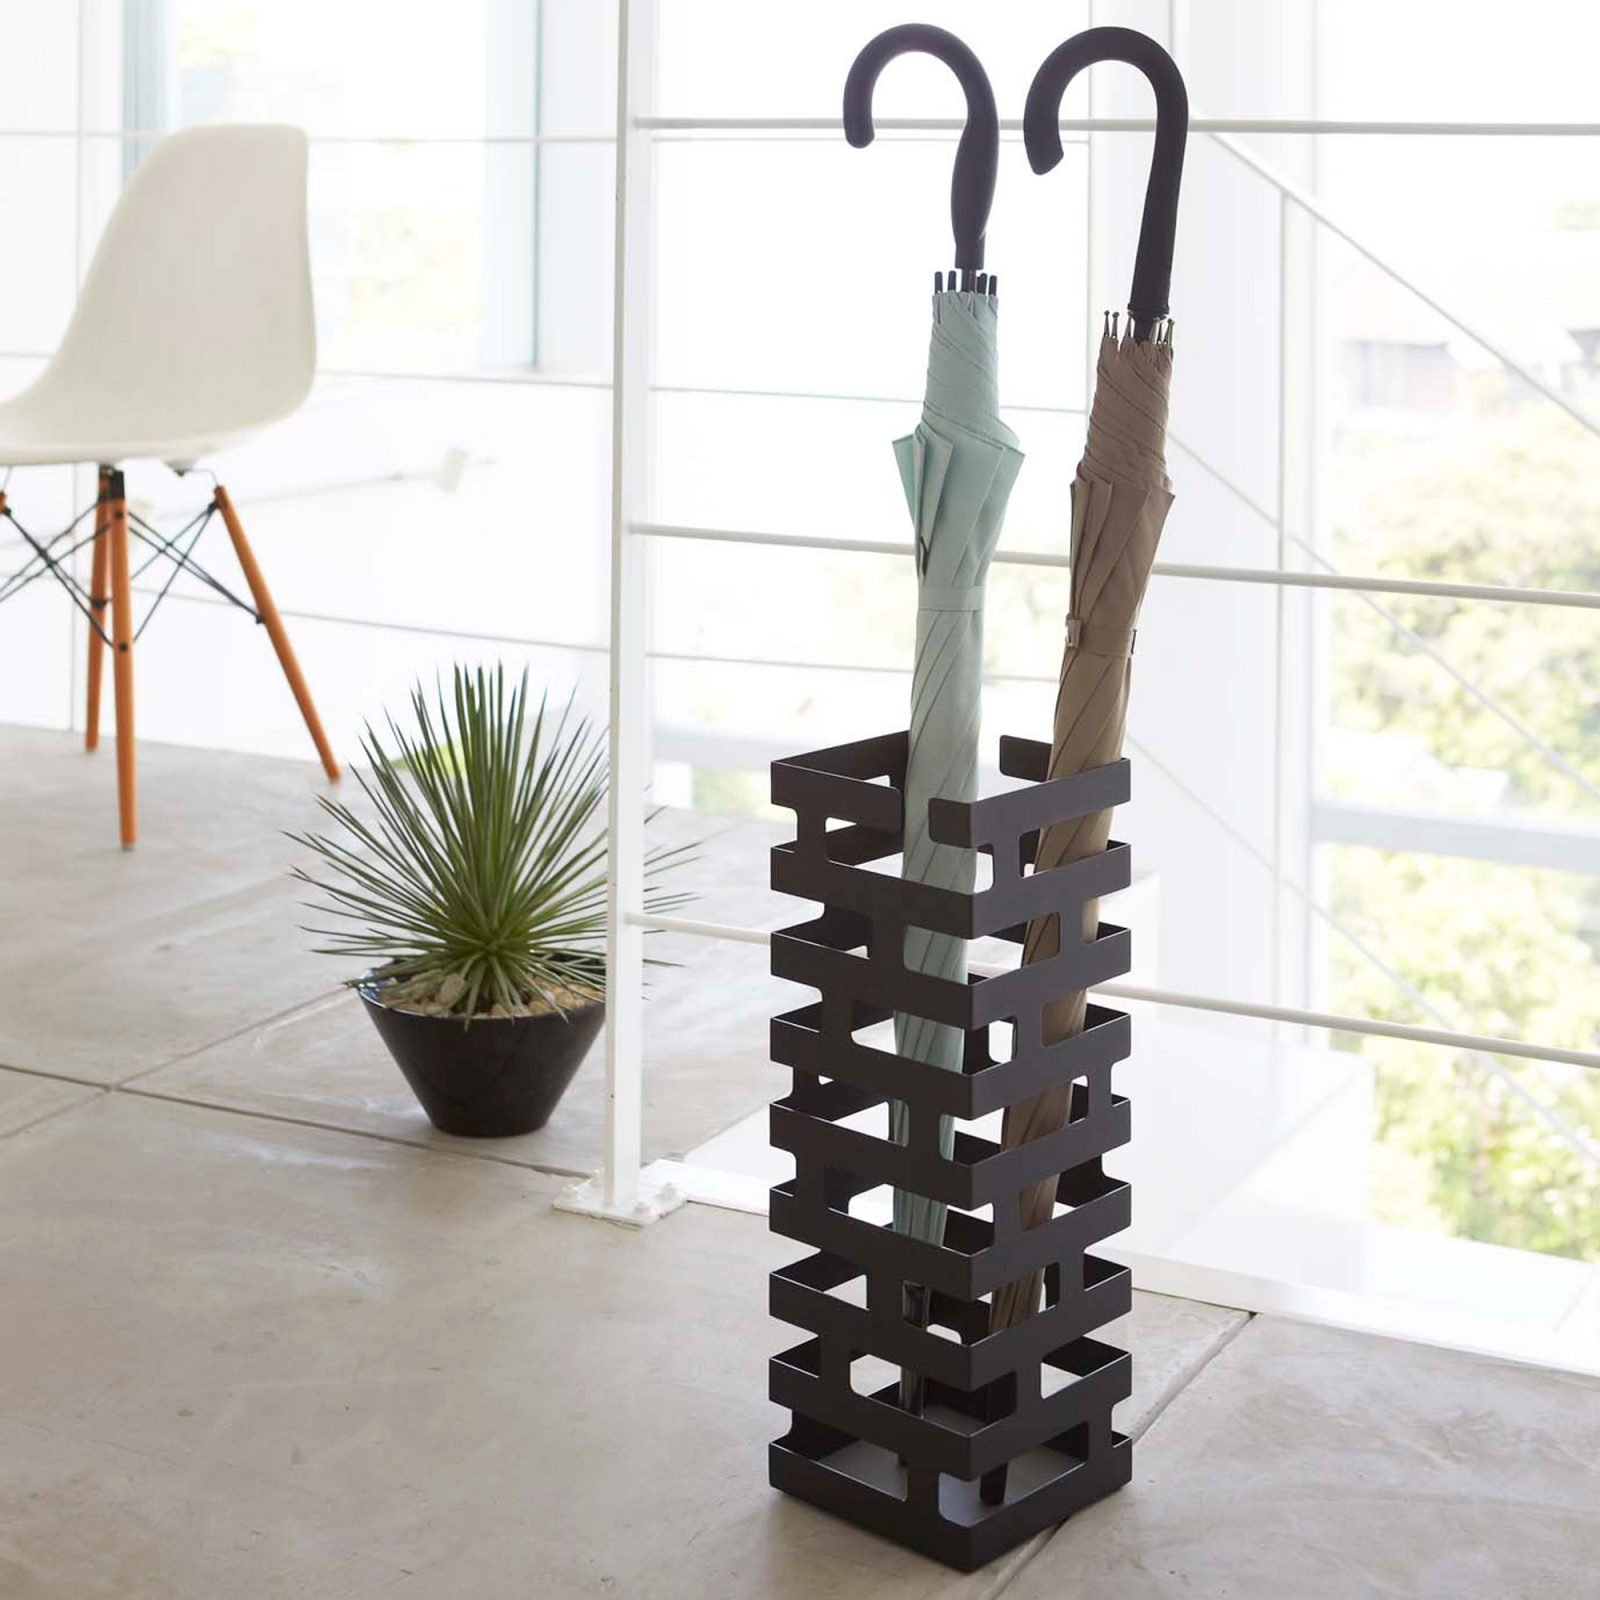 brick-umbrella-stand-black-2